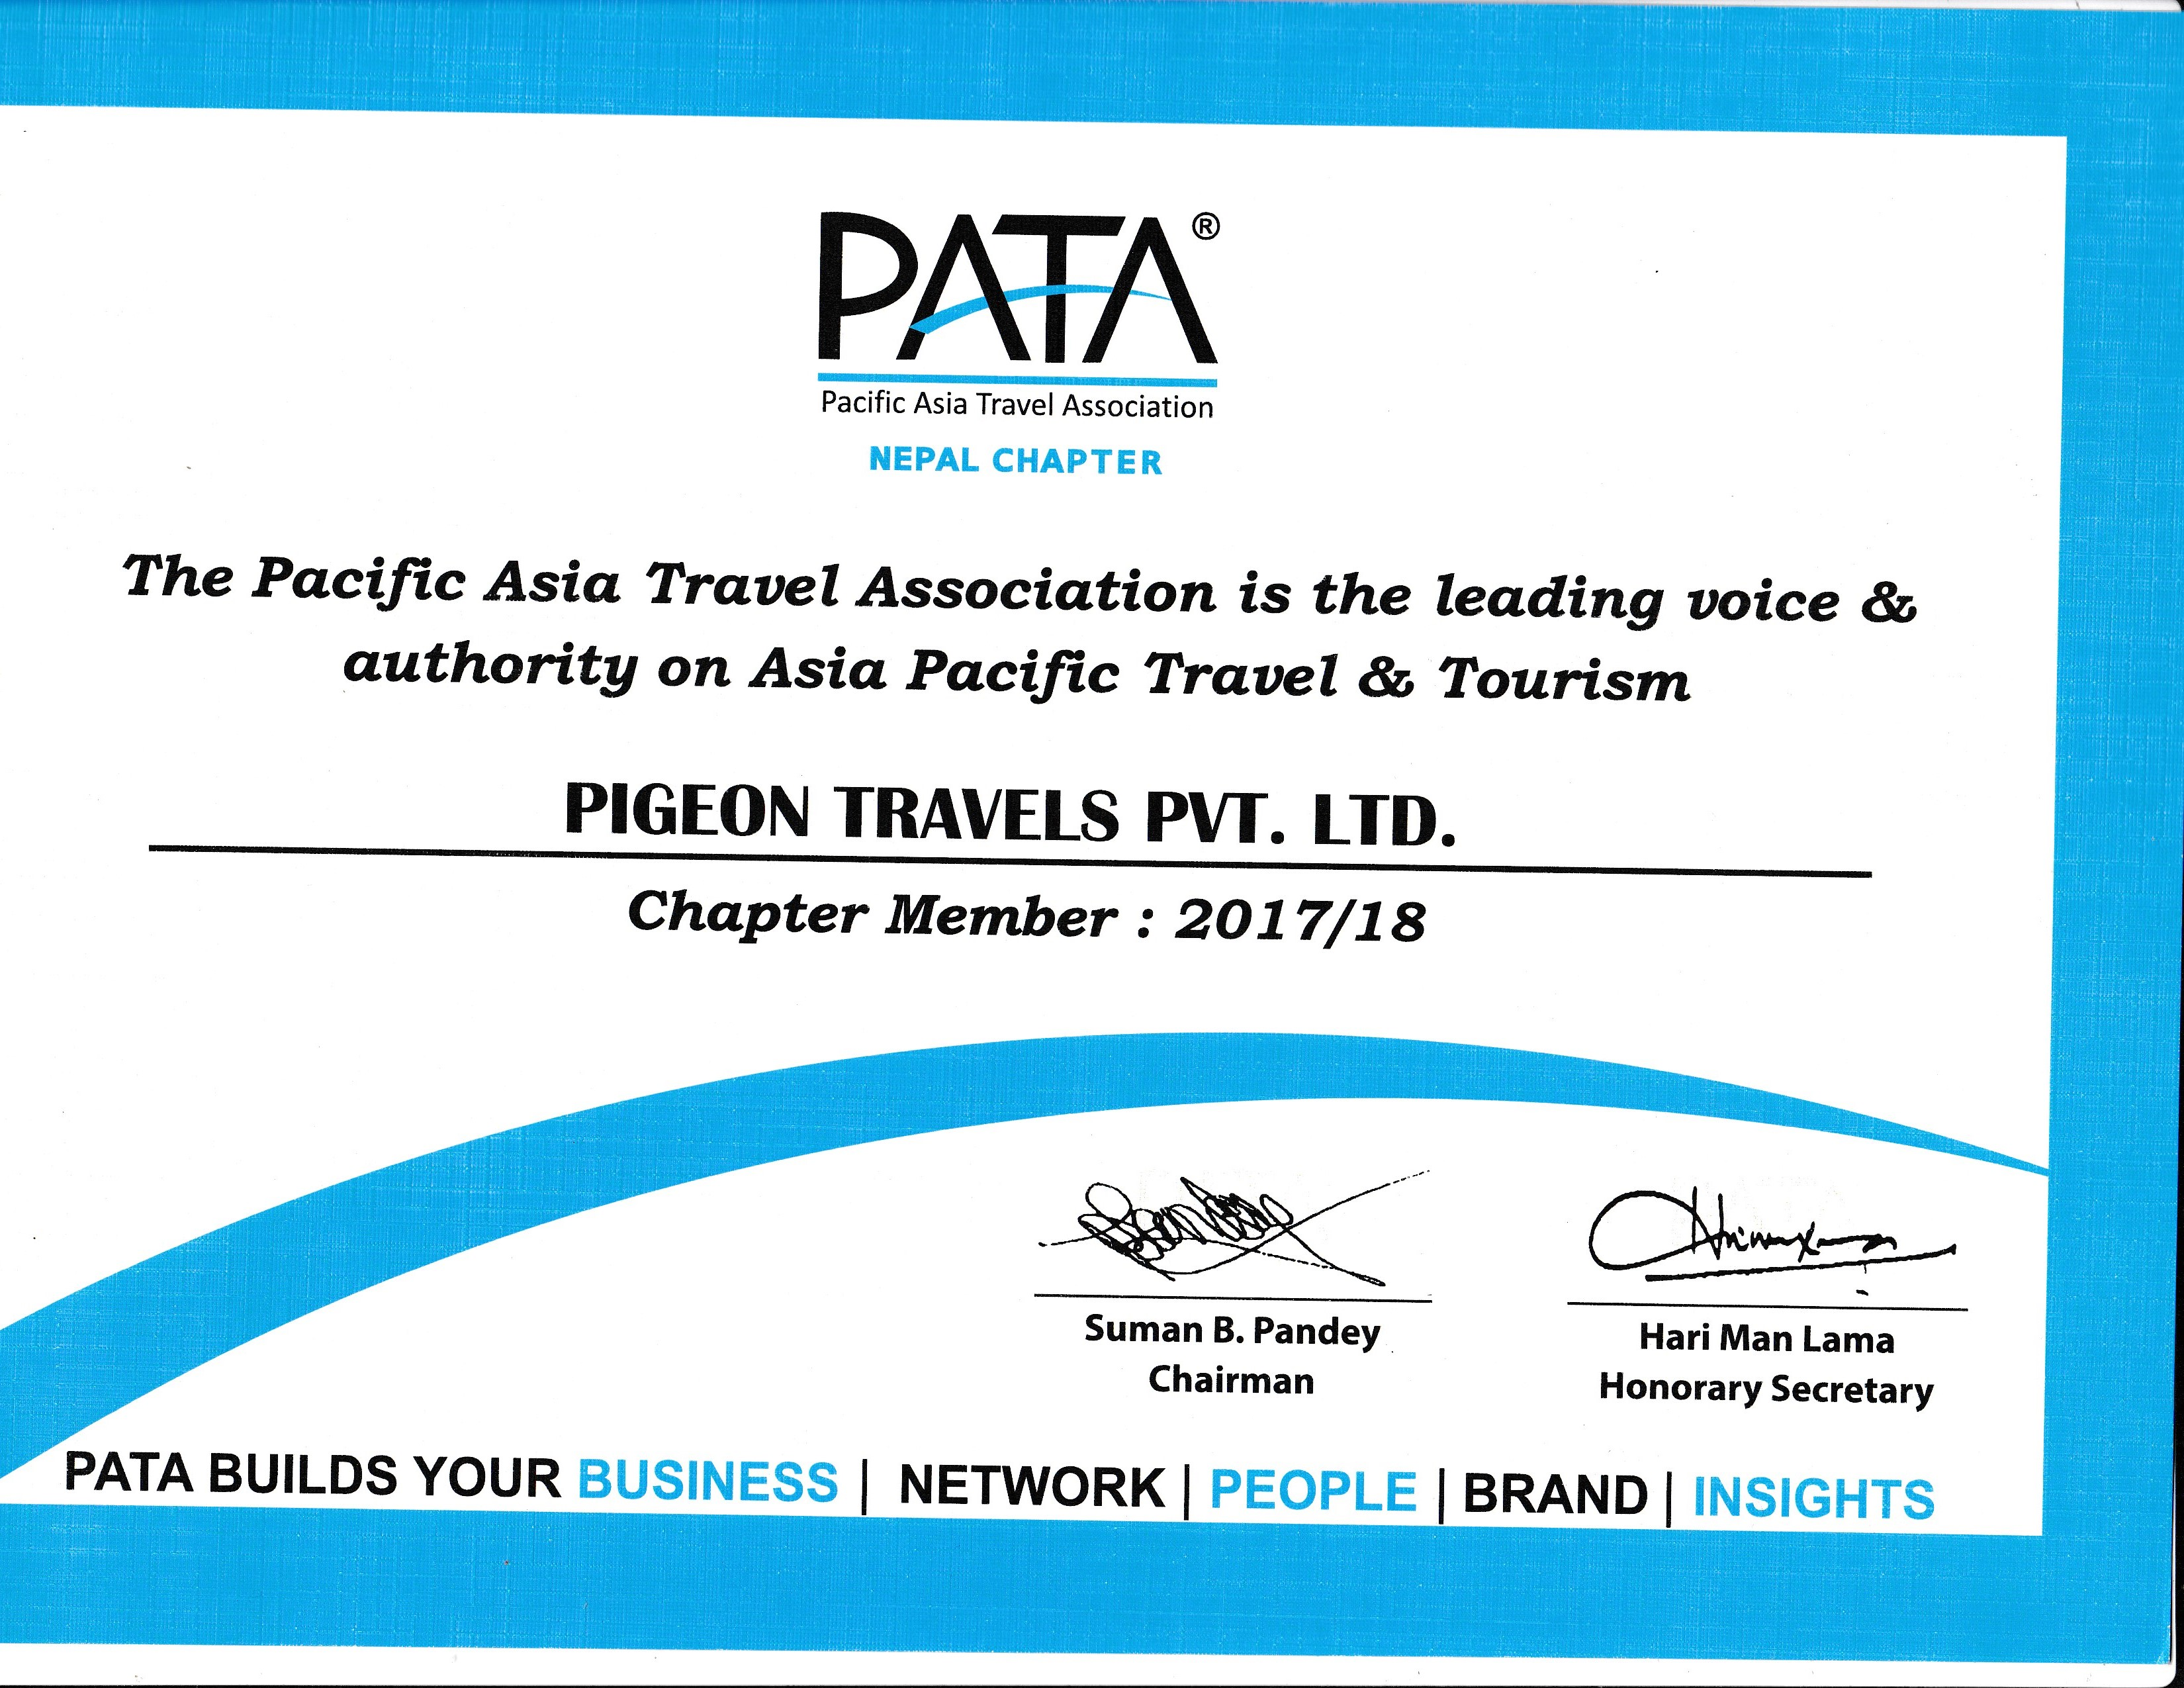 Certificate from PATA Nepal Chapter